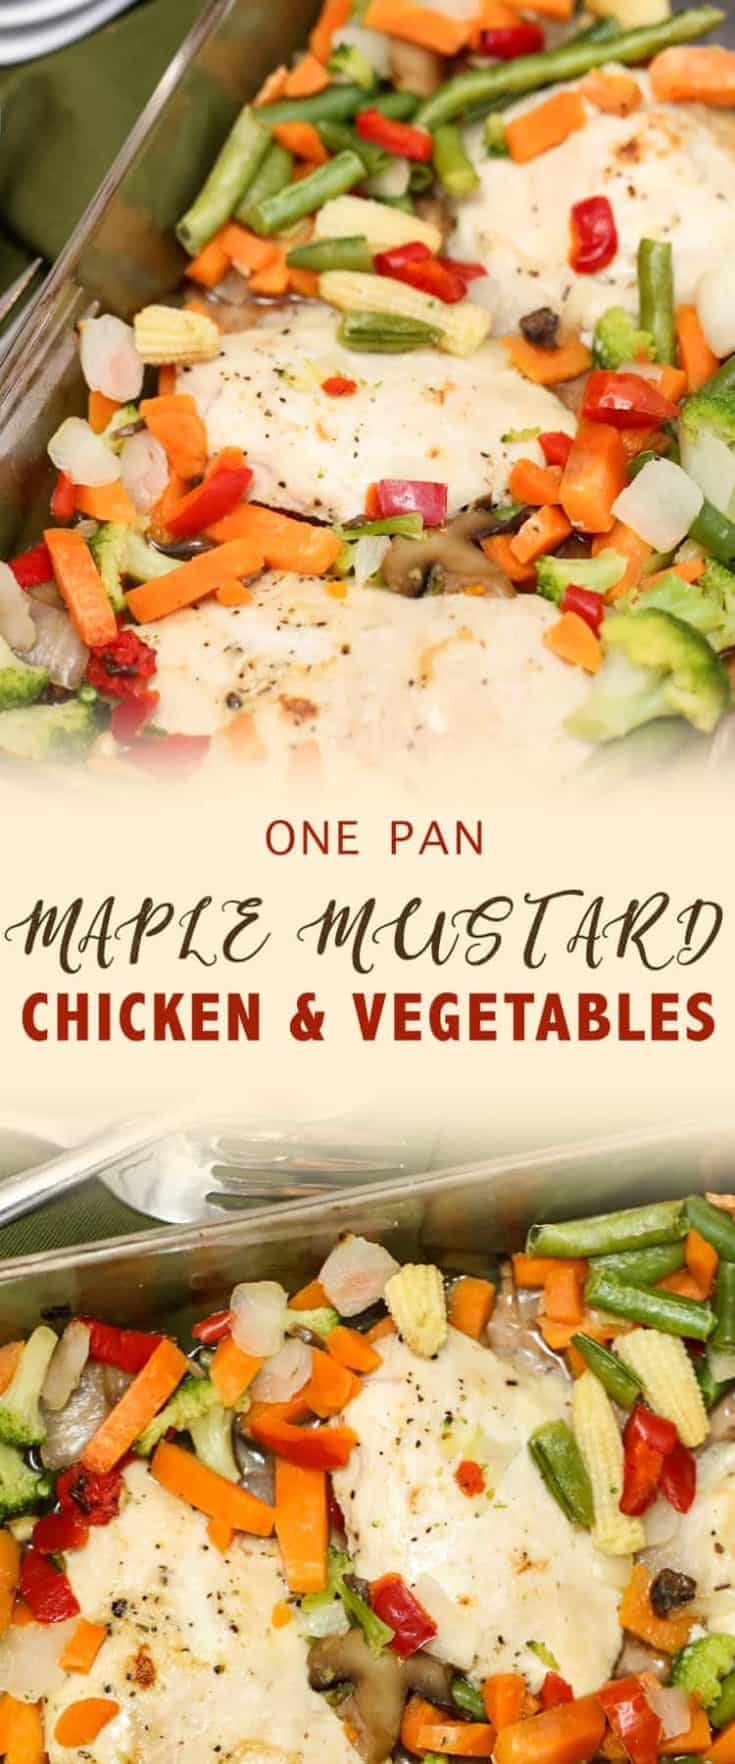 One Pan Maple Mustard Chicken and Vegetables is a marinated chicken breast recipe using two key ingredients: dry mustard and maple syrup. It's a nice flavour combination! The mixed vegetables sides are roasted along with the chicken, making it a one-dish meal. #onedish #onepan #easyrecipe